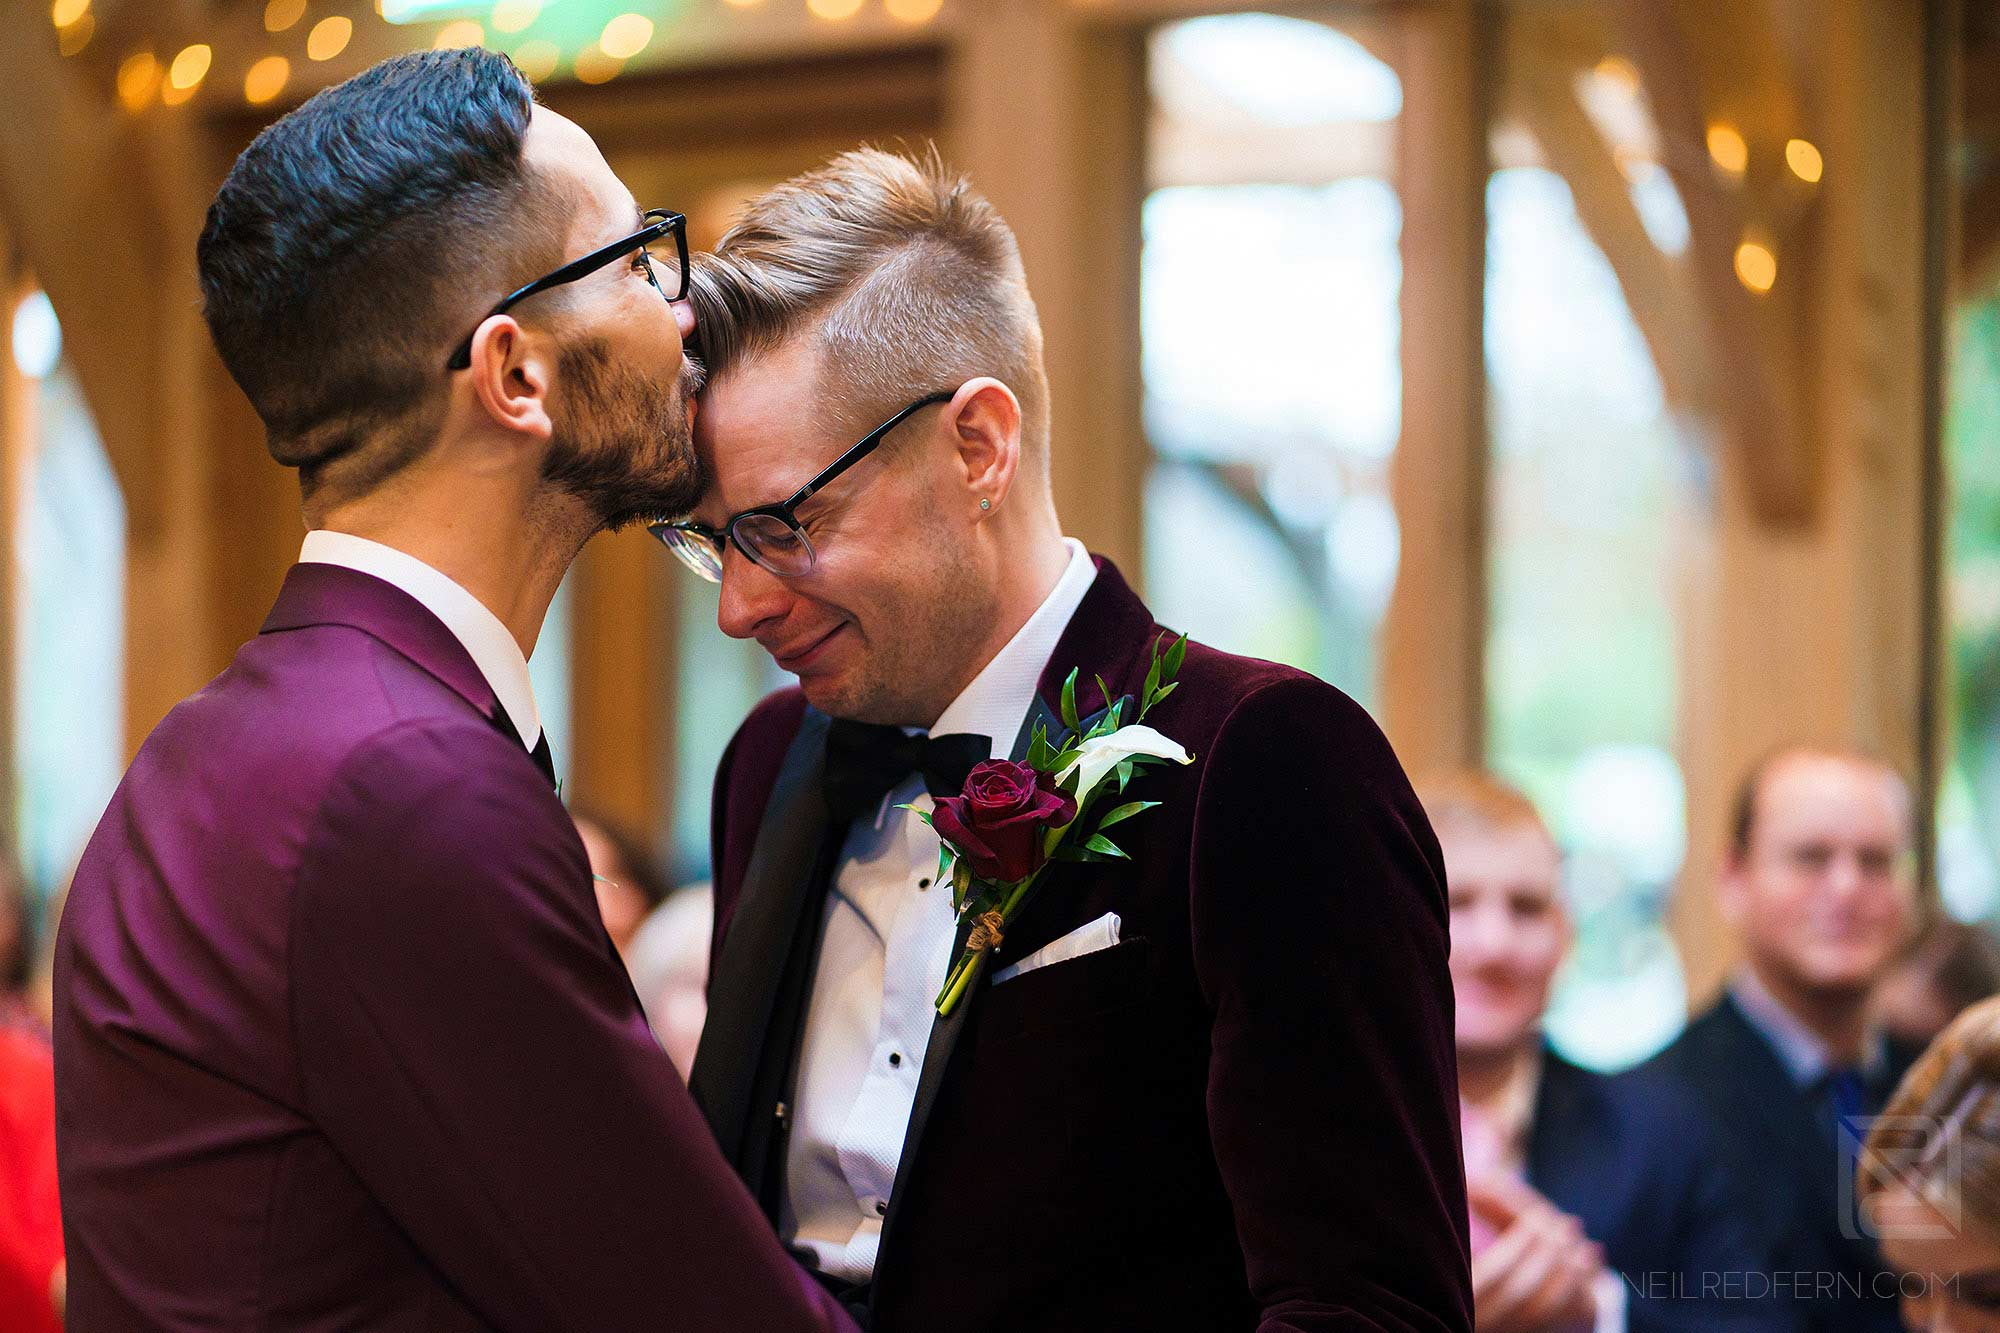 emotional moment between two grooms